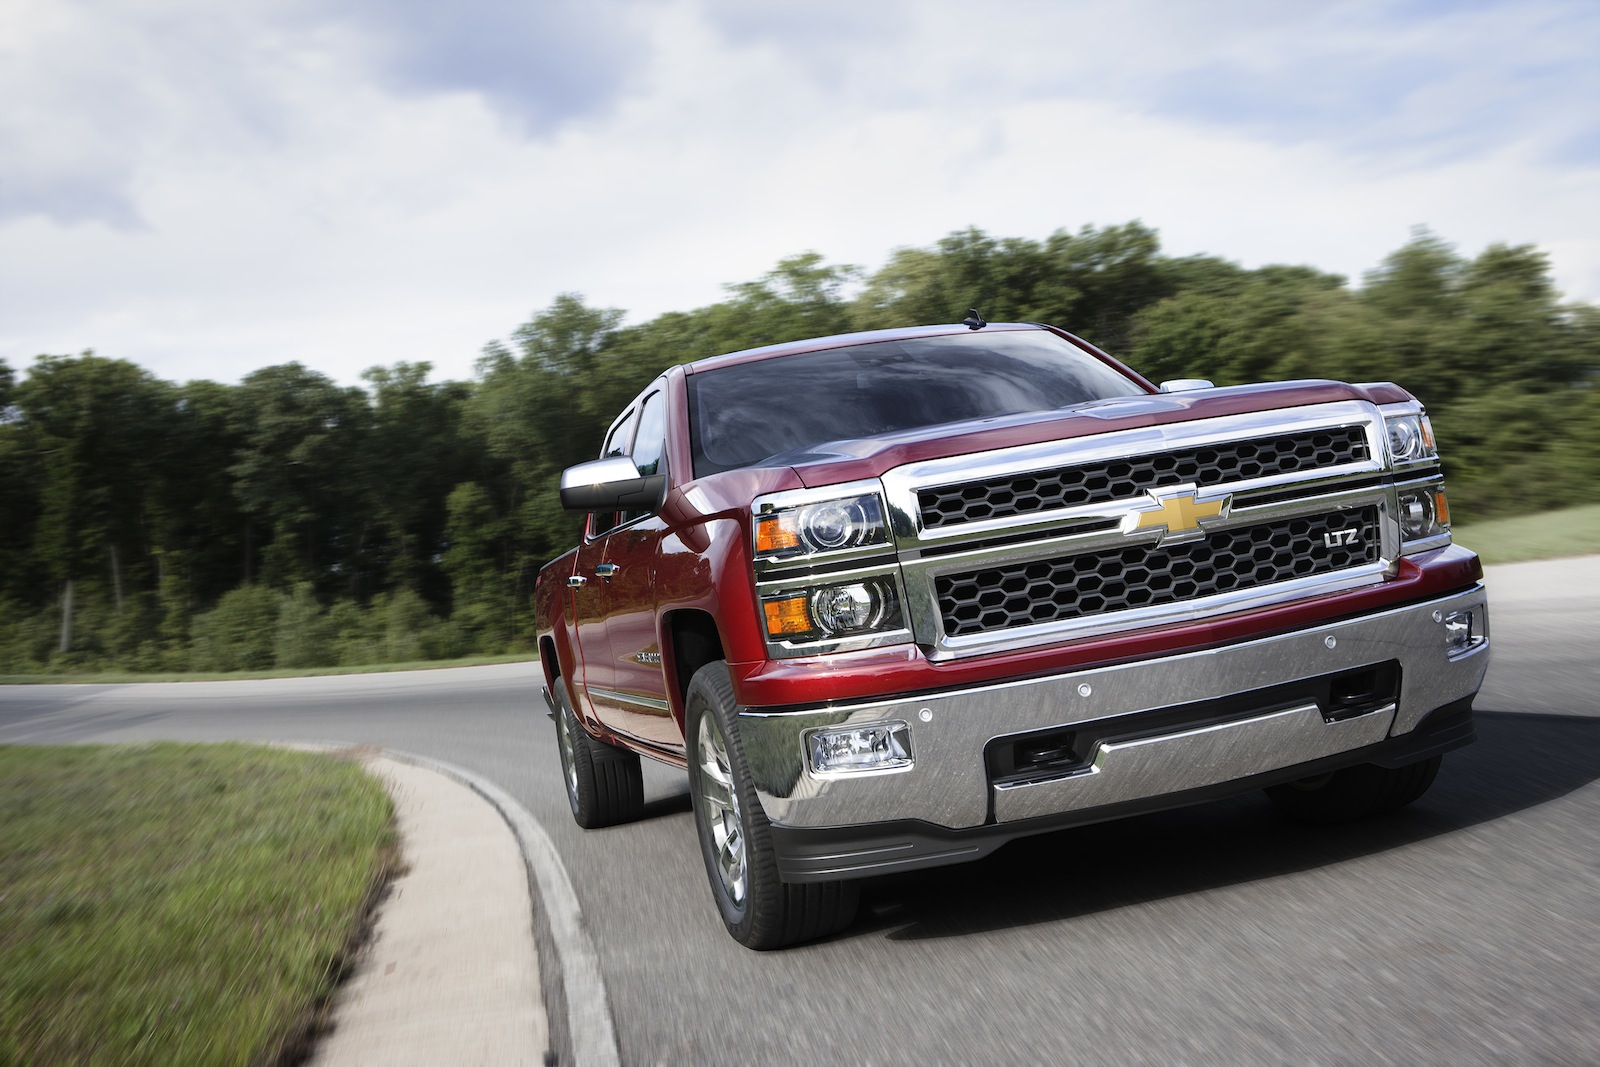 2014 chevrolet silverado gmc sierra recalled over power steering loss 690 000 u s trucks affected. Black Bedroom Furniture Sets. Home Design Ideas